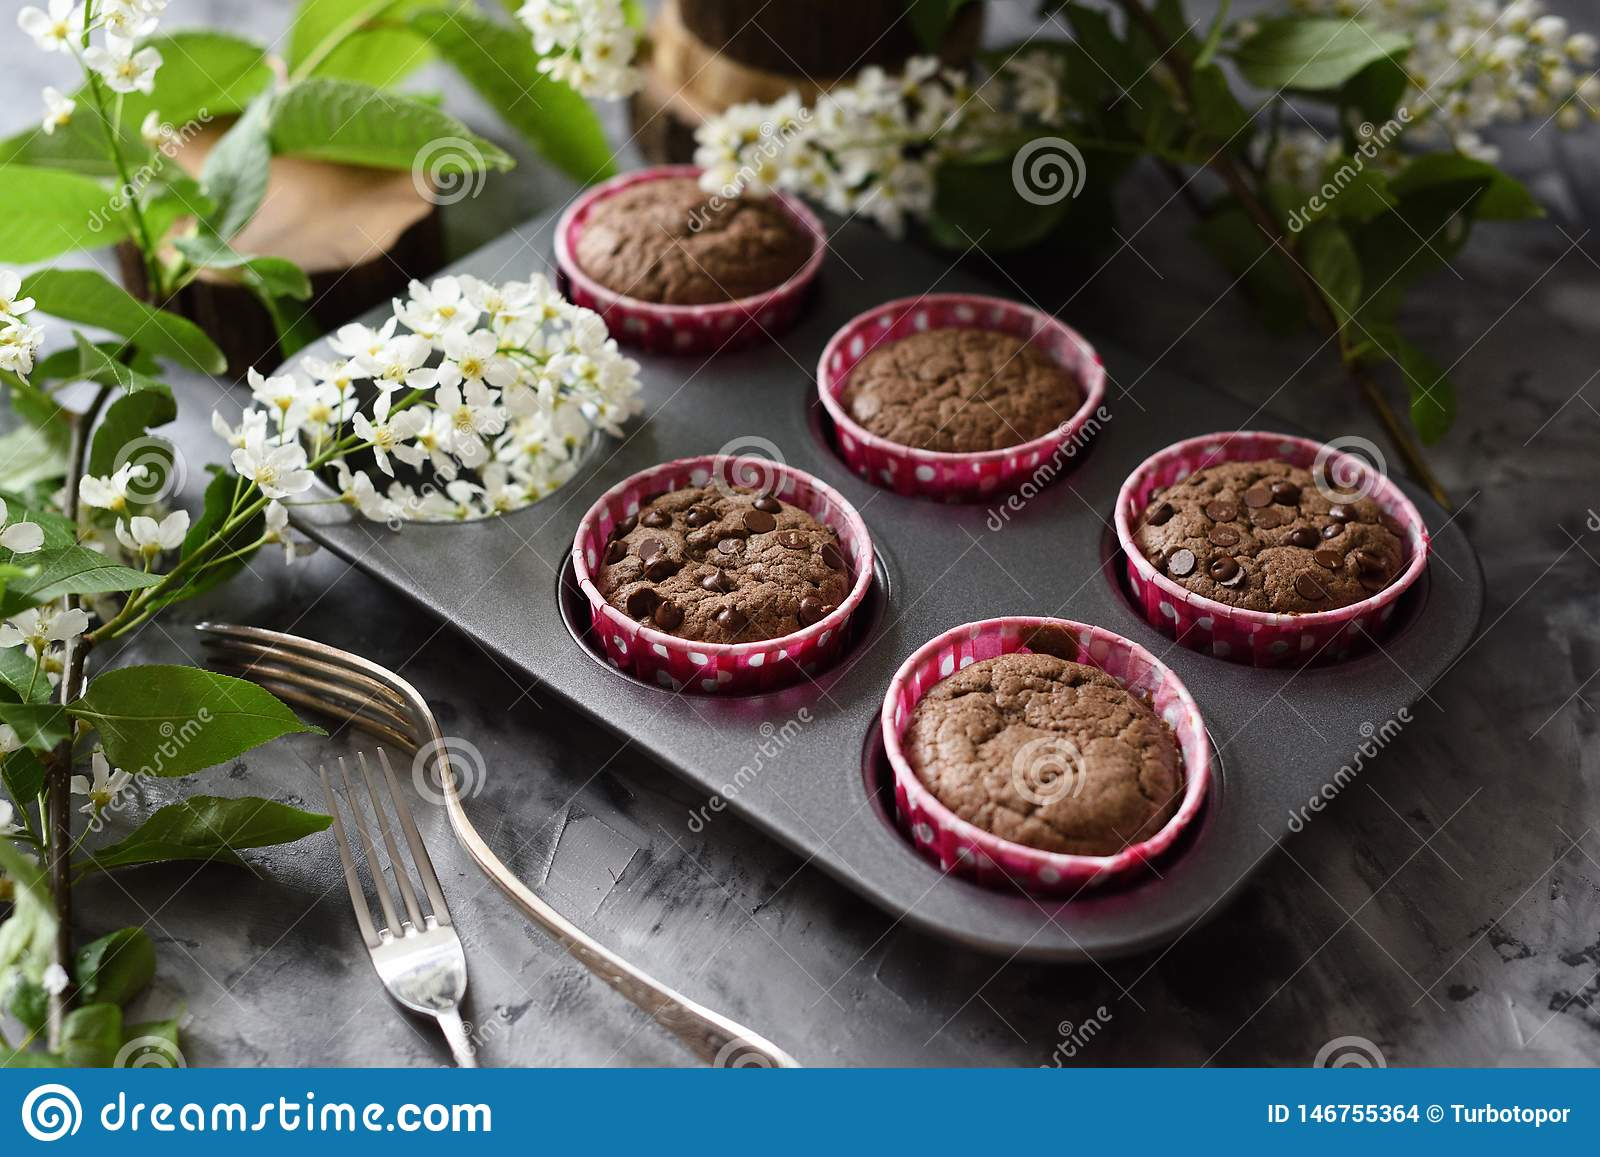 Delicious homemade chocolate muffins with bird cherry flowers on dark background